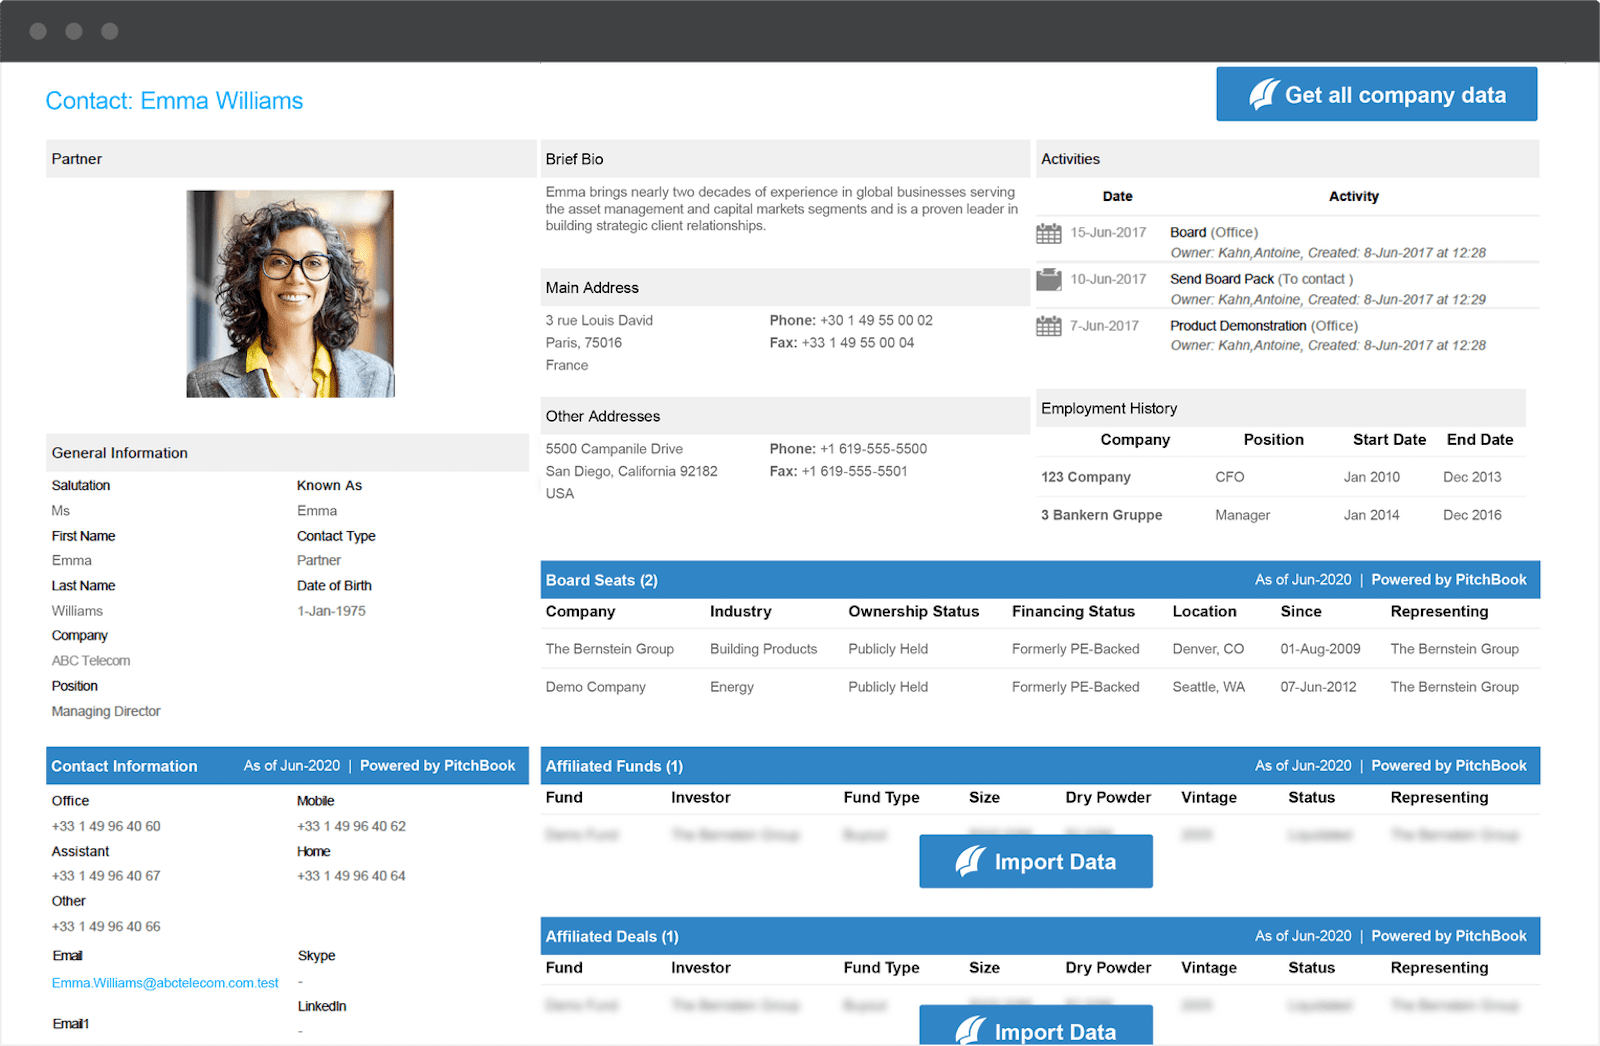 CRM contact page for Emma Williams showing data imported from PitchBook.